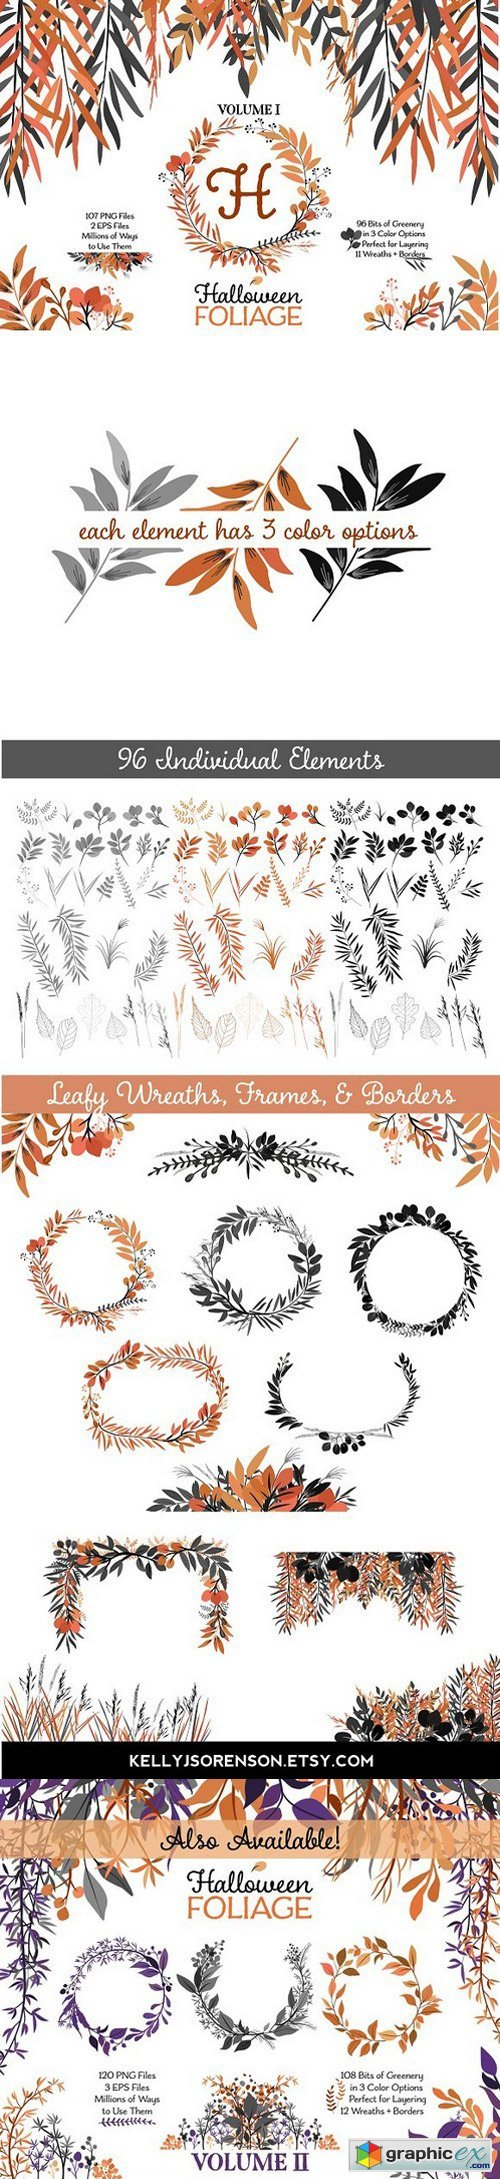 Halloween Leaves and Wreaths